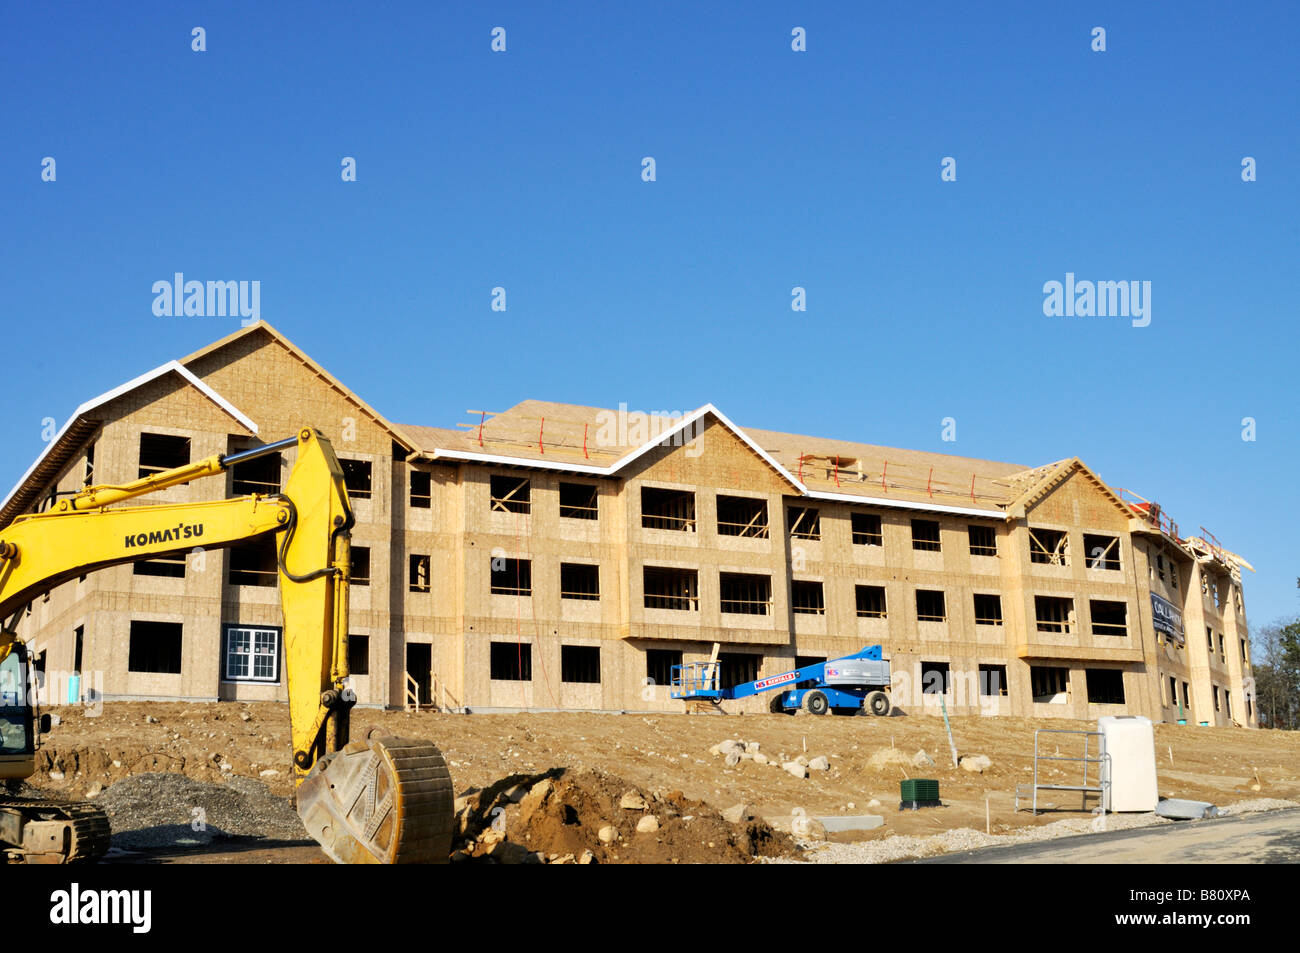 Apartment building construction site with the exterior wood frame and Komatsu excavator heavy equipment on site - Stock Image